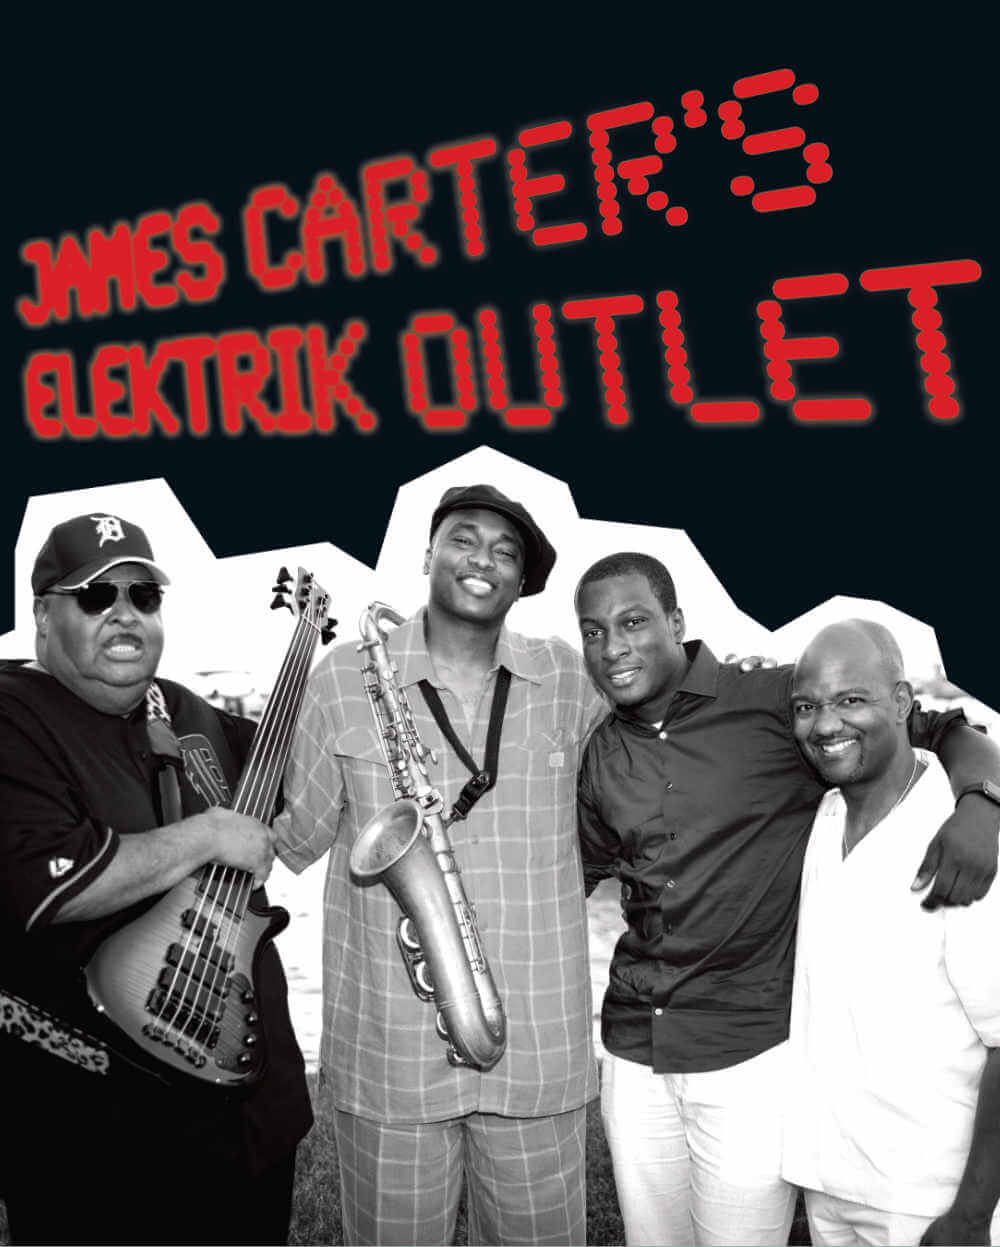 James Carter's Elektrik Outlet